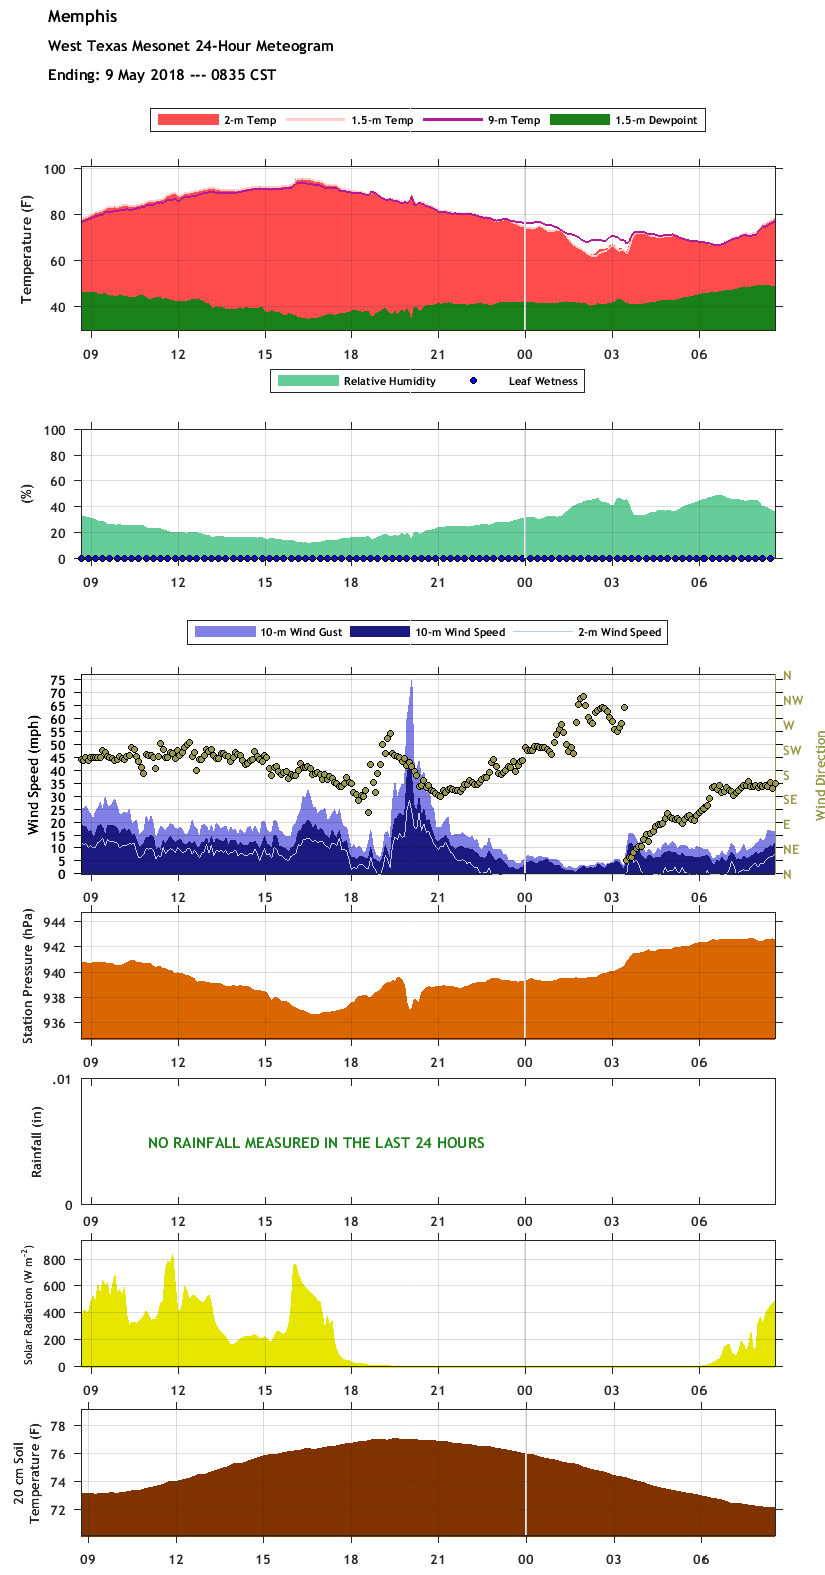 Time series of the West Texas Mesonet site near Memphis.